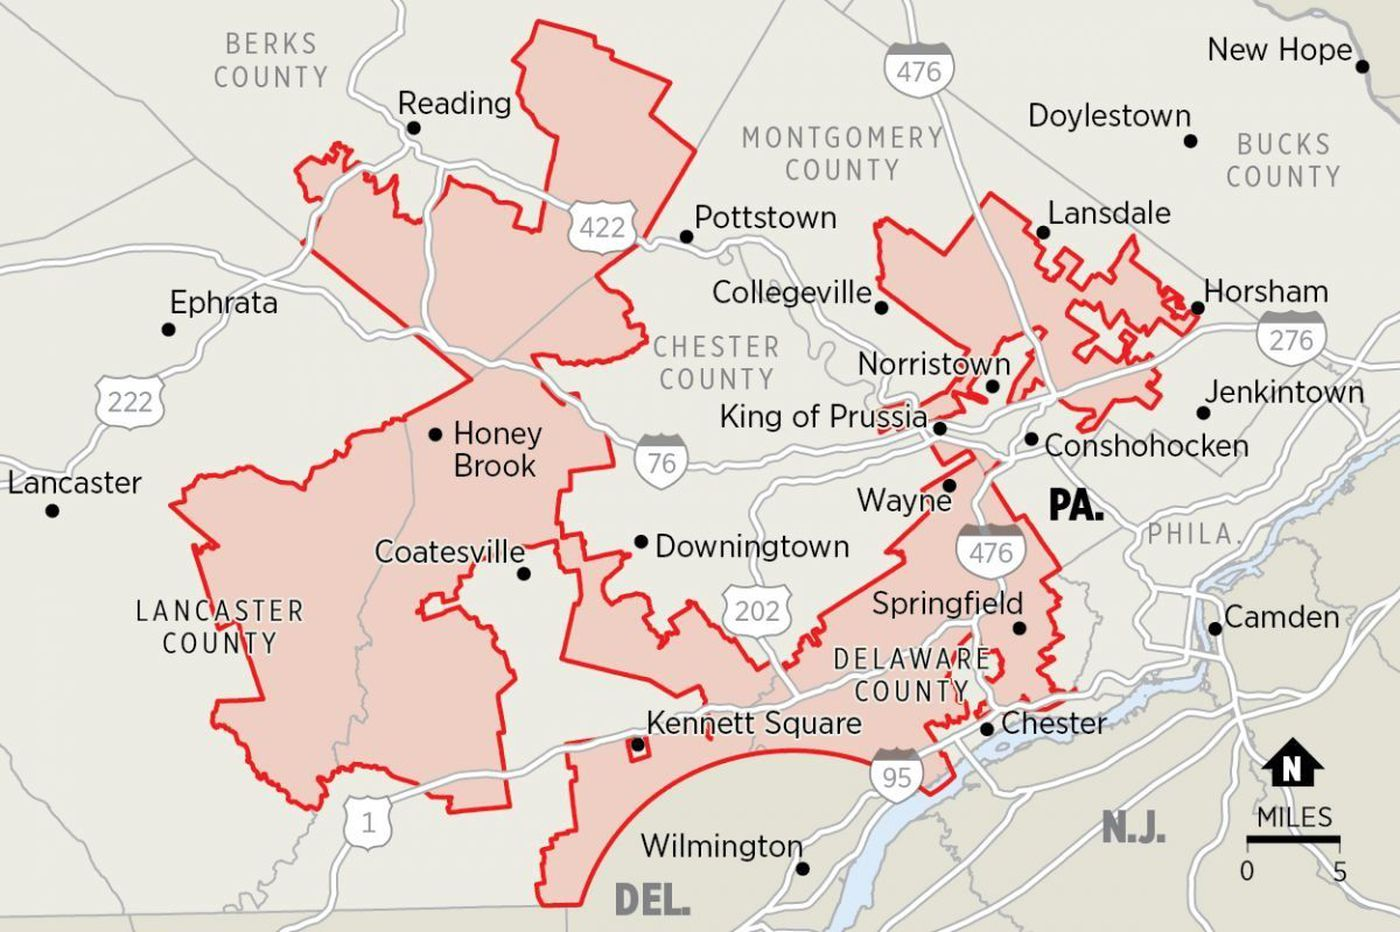 In case that could affect 2018 elections, gerrymandering suit can proceed, Pa. high court rules